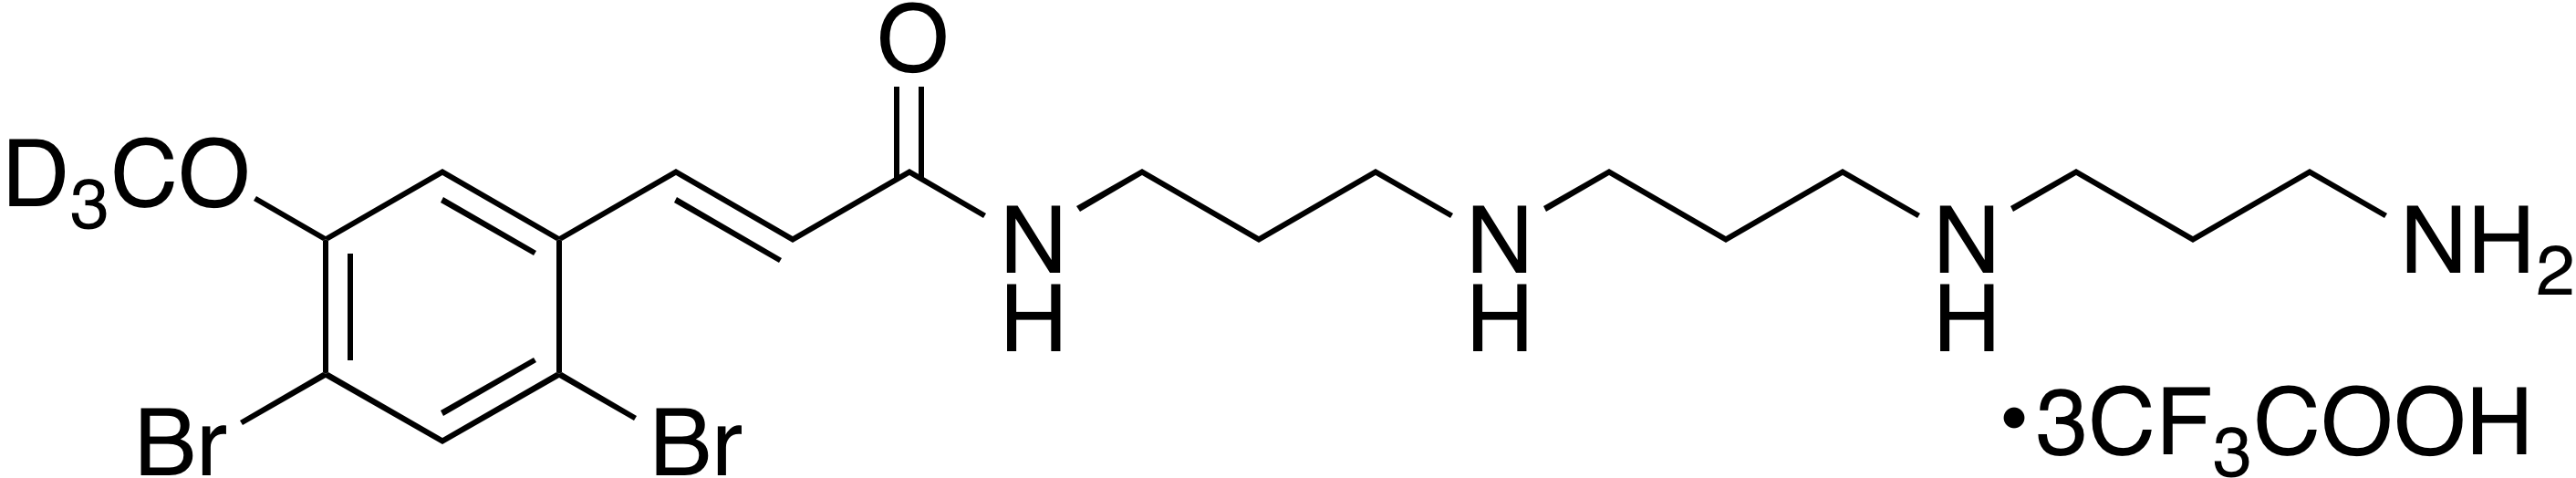 (E)-N-(3-((3-((3-aminopropyl)amino)propyl)amino)propyl)-3-(2,4-dibromo-5-methoxy-d<sub>3</sub>-phenyl)acrylamide trifluoroacetate (1:3)